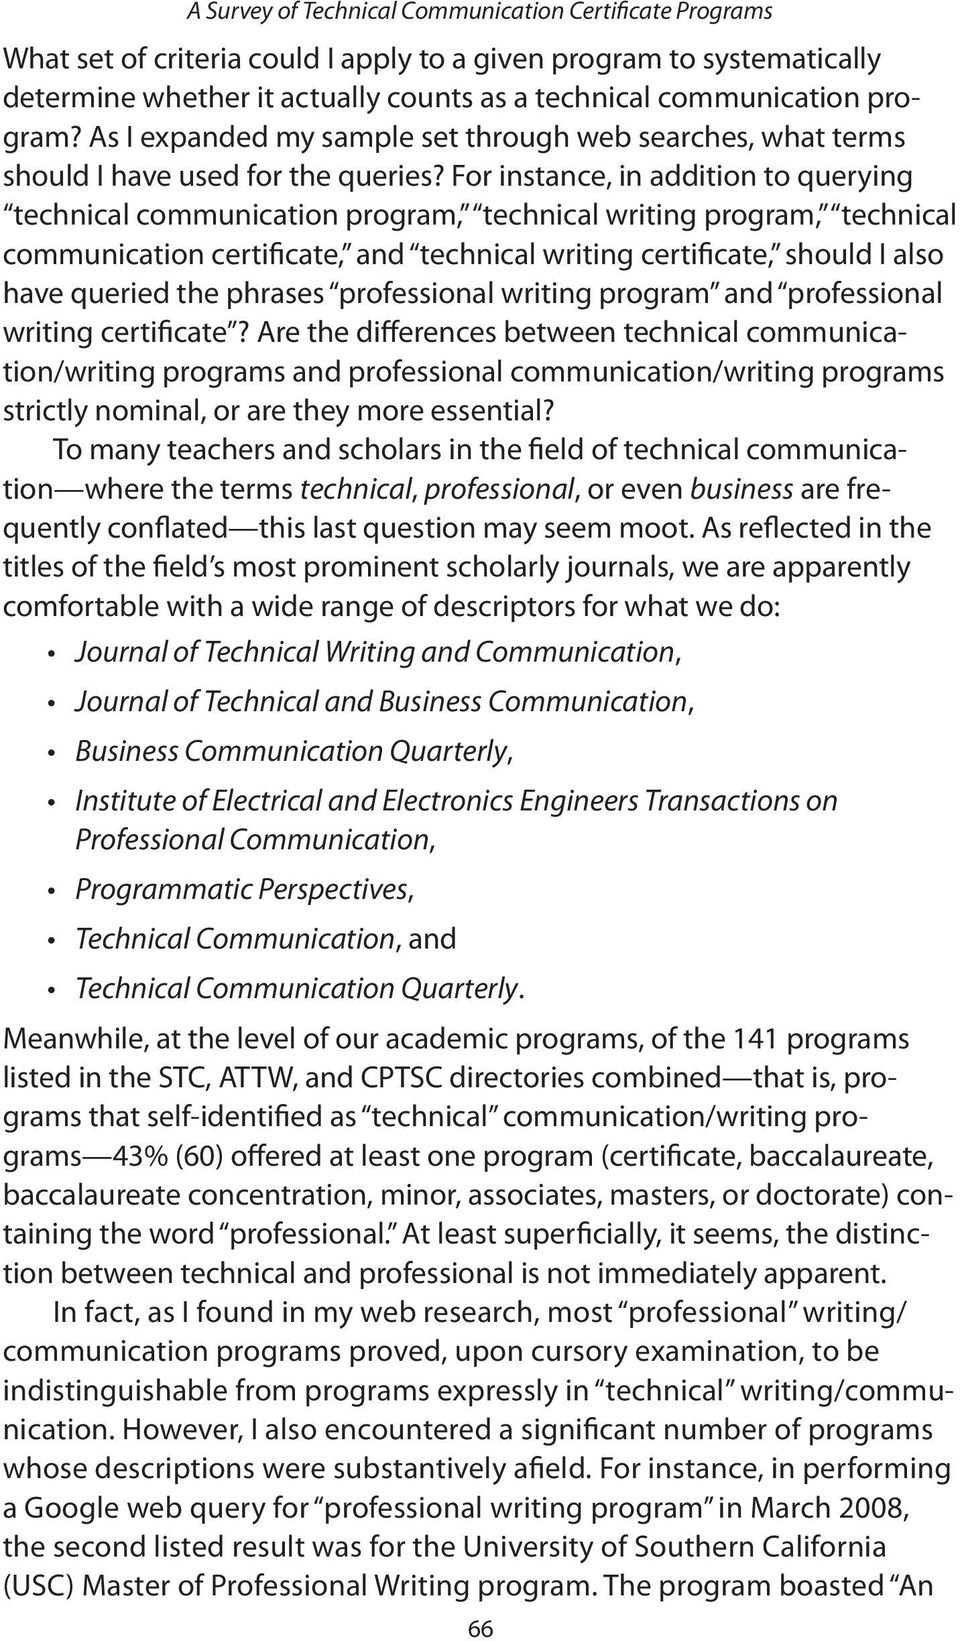 For instance, in addition to querying technical communication program, technical writing program, technical communication certificate, and technical writing certificate, should I also have queried